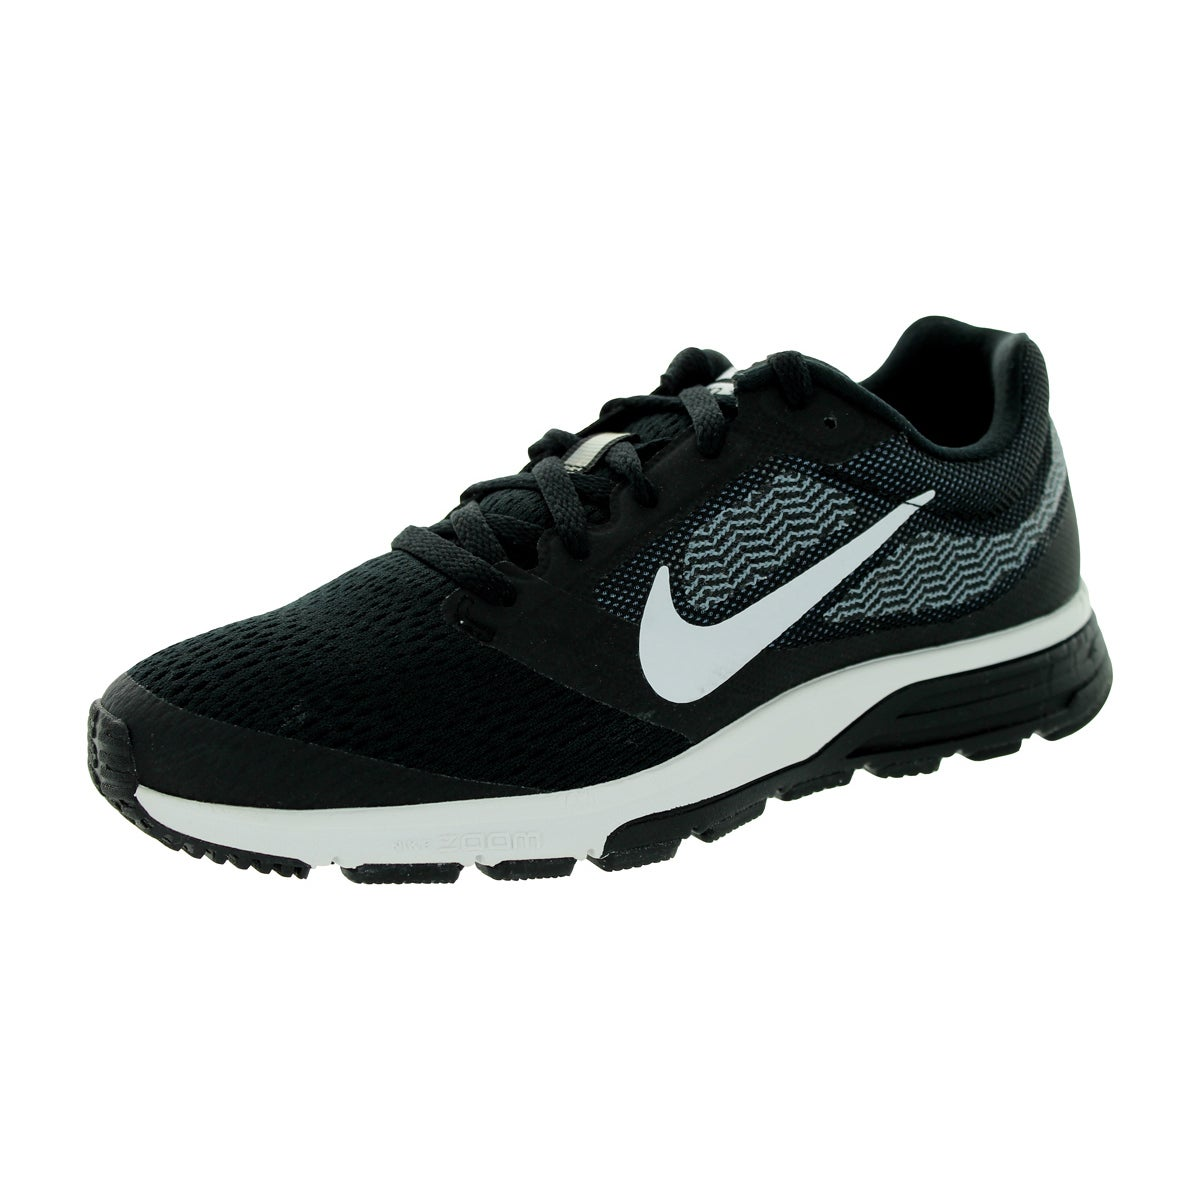 7a5bc91f89e Shop Nike Women s Air Zoom Fly 2 Black White Cool Blue Running Shoe - Free  Shipping Today - Overstock.com - 12321728